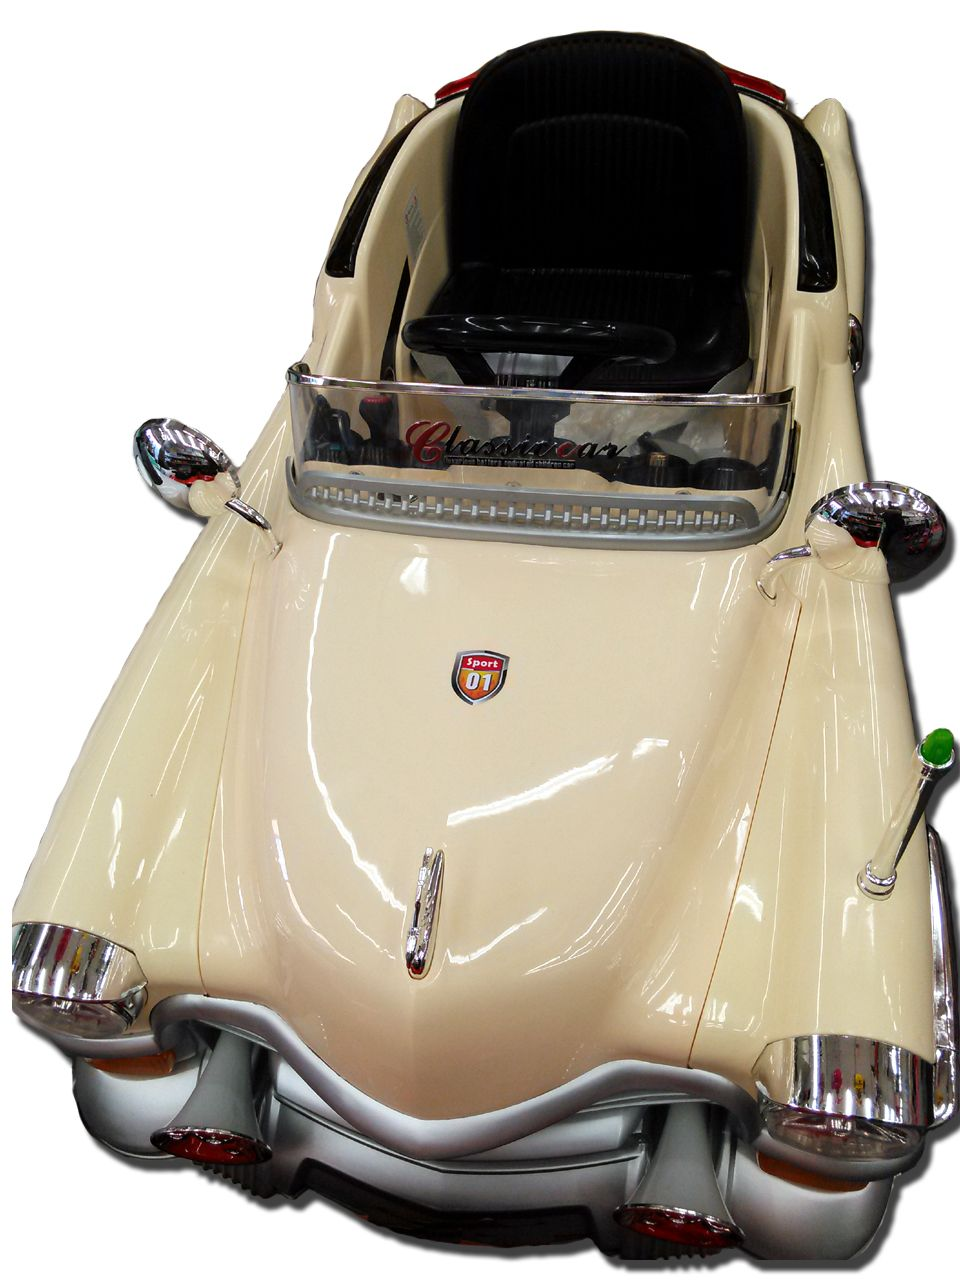 Tier One Import Children's electric toy car Classic 1912